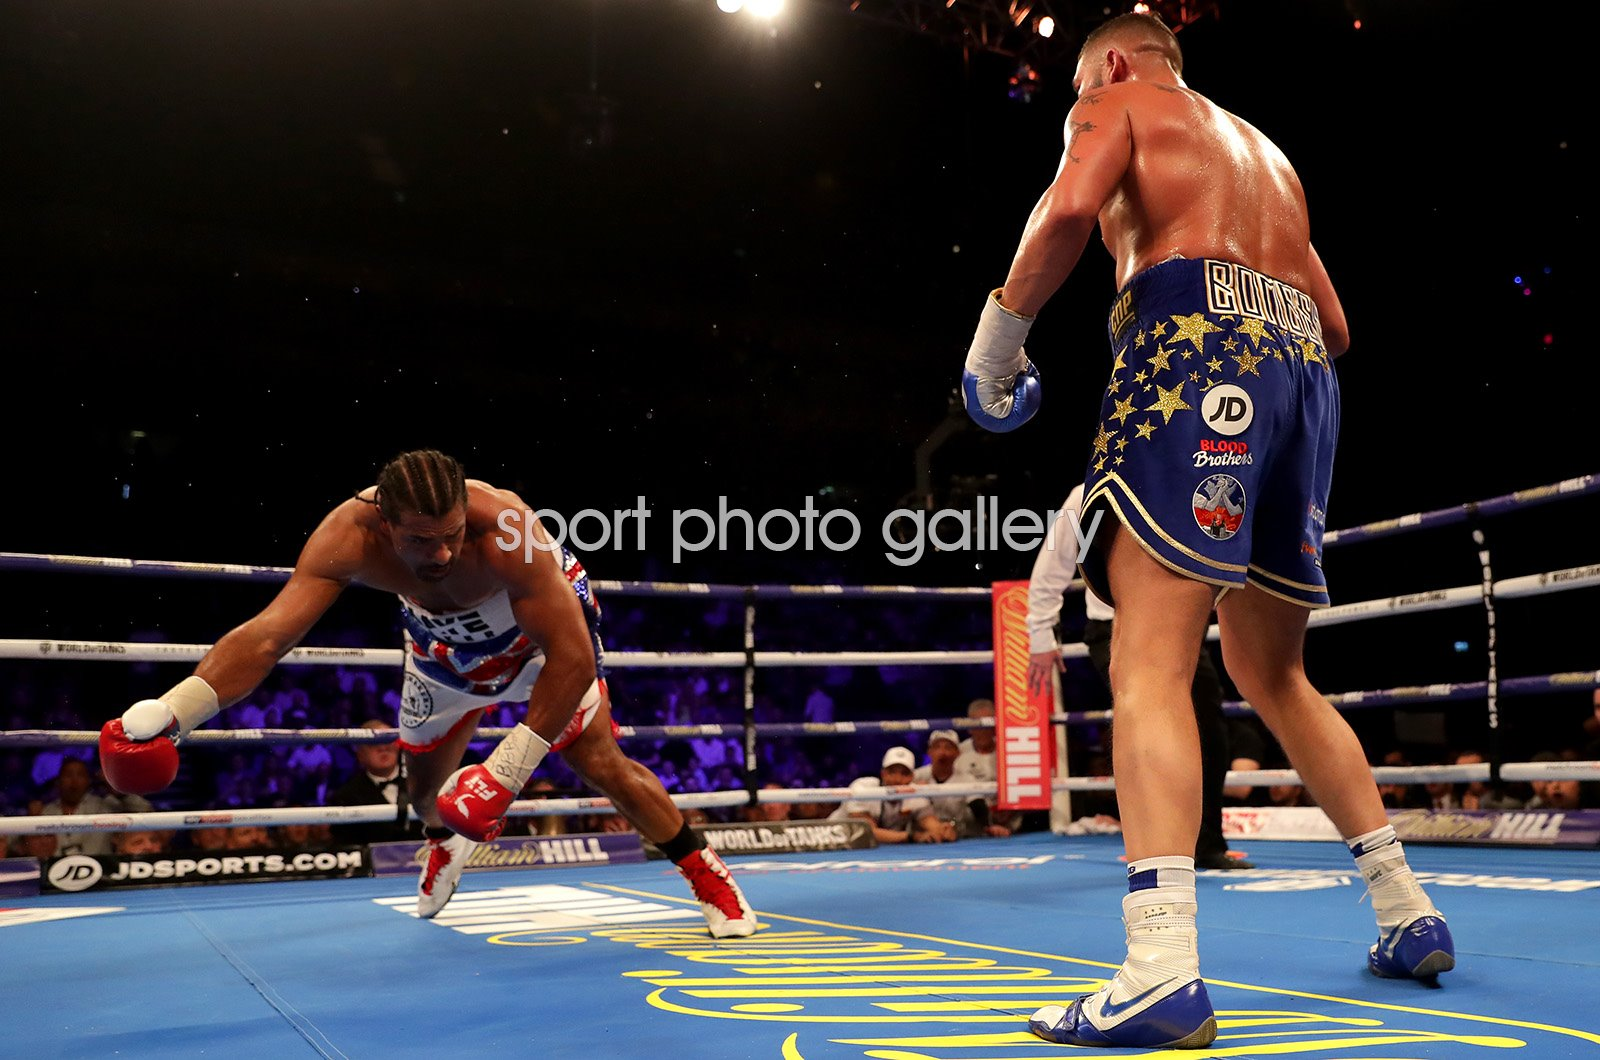 David Haye v Tony Bellew O2 London Rematch 2018